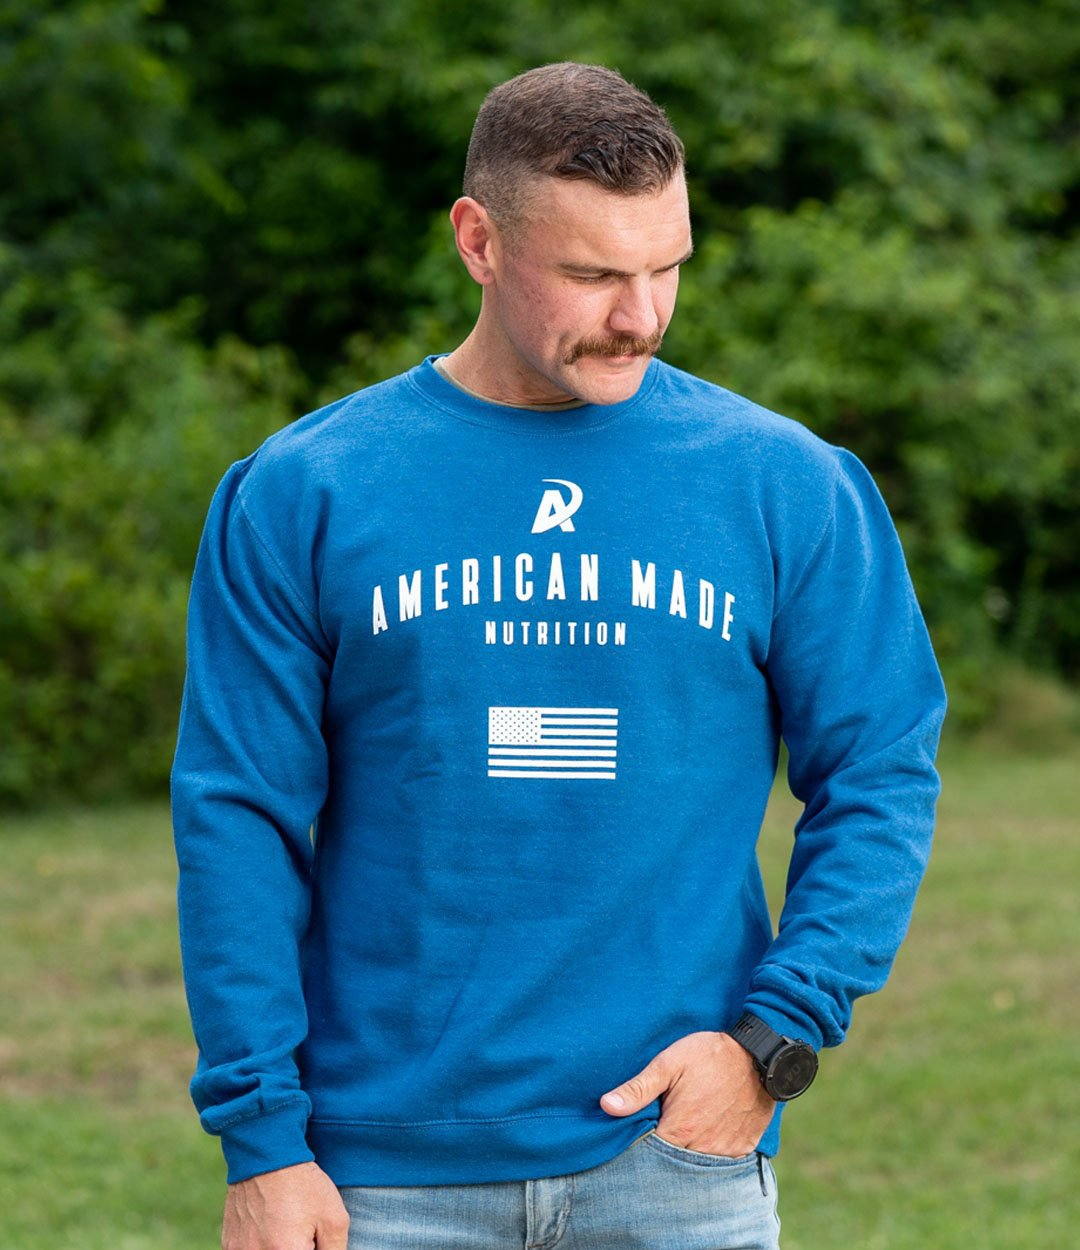 American Made Nutrition CREW NECKS S Crewneck Pullover // Royal Blue